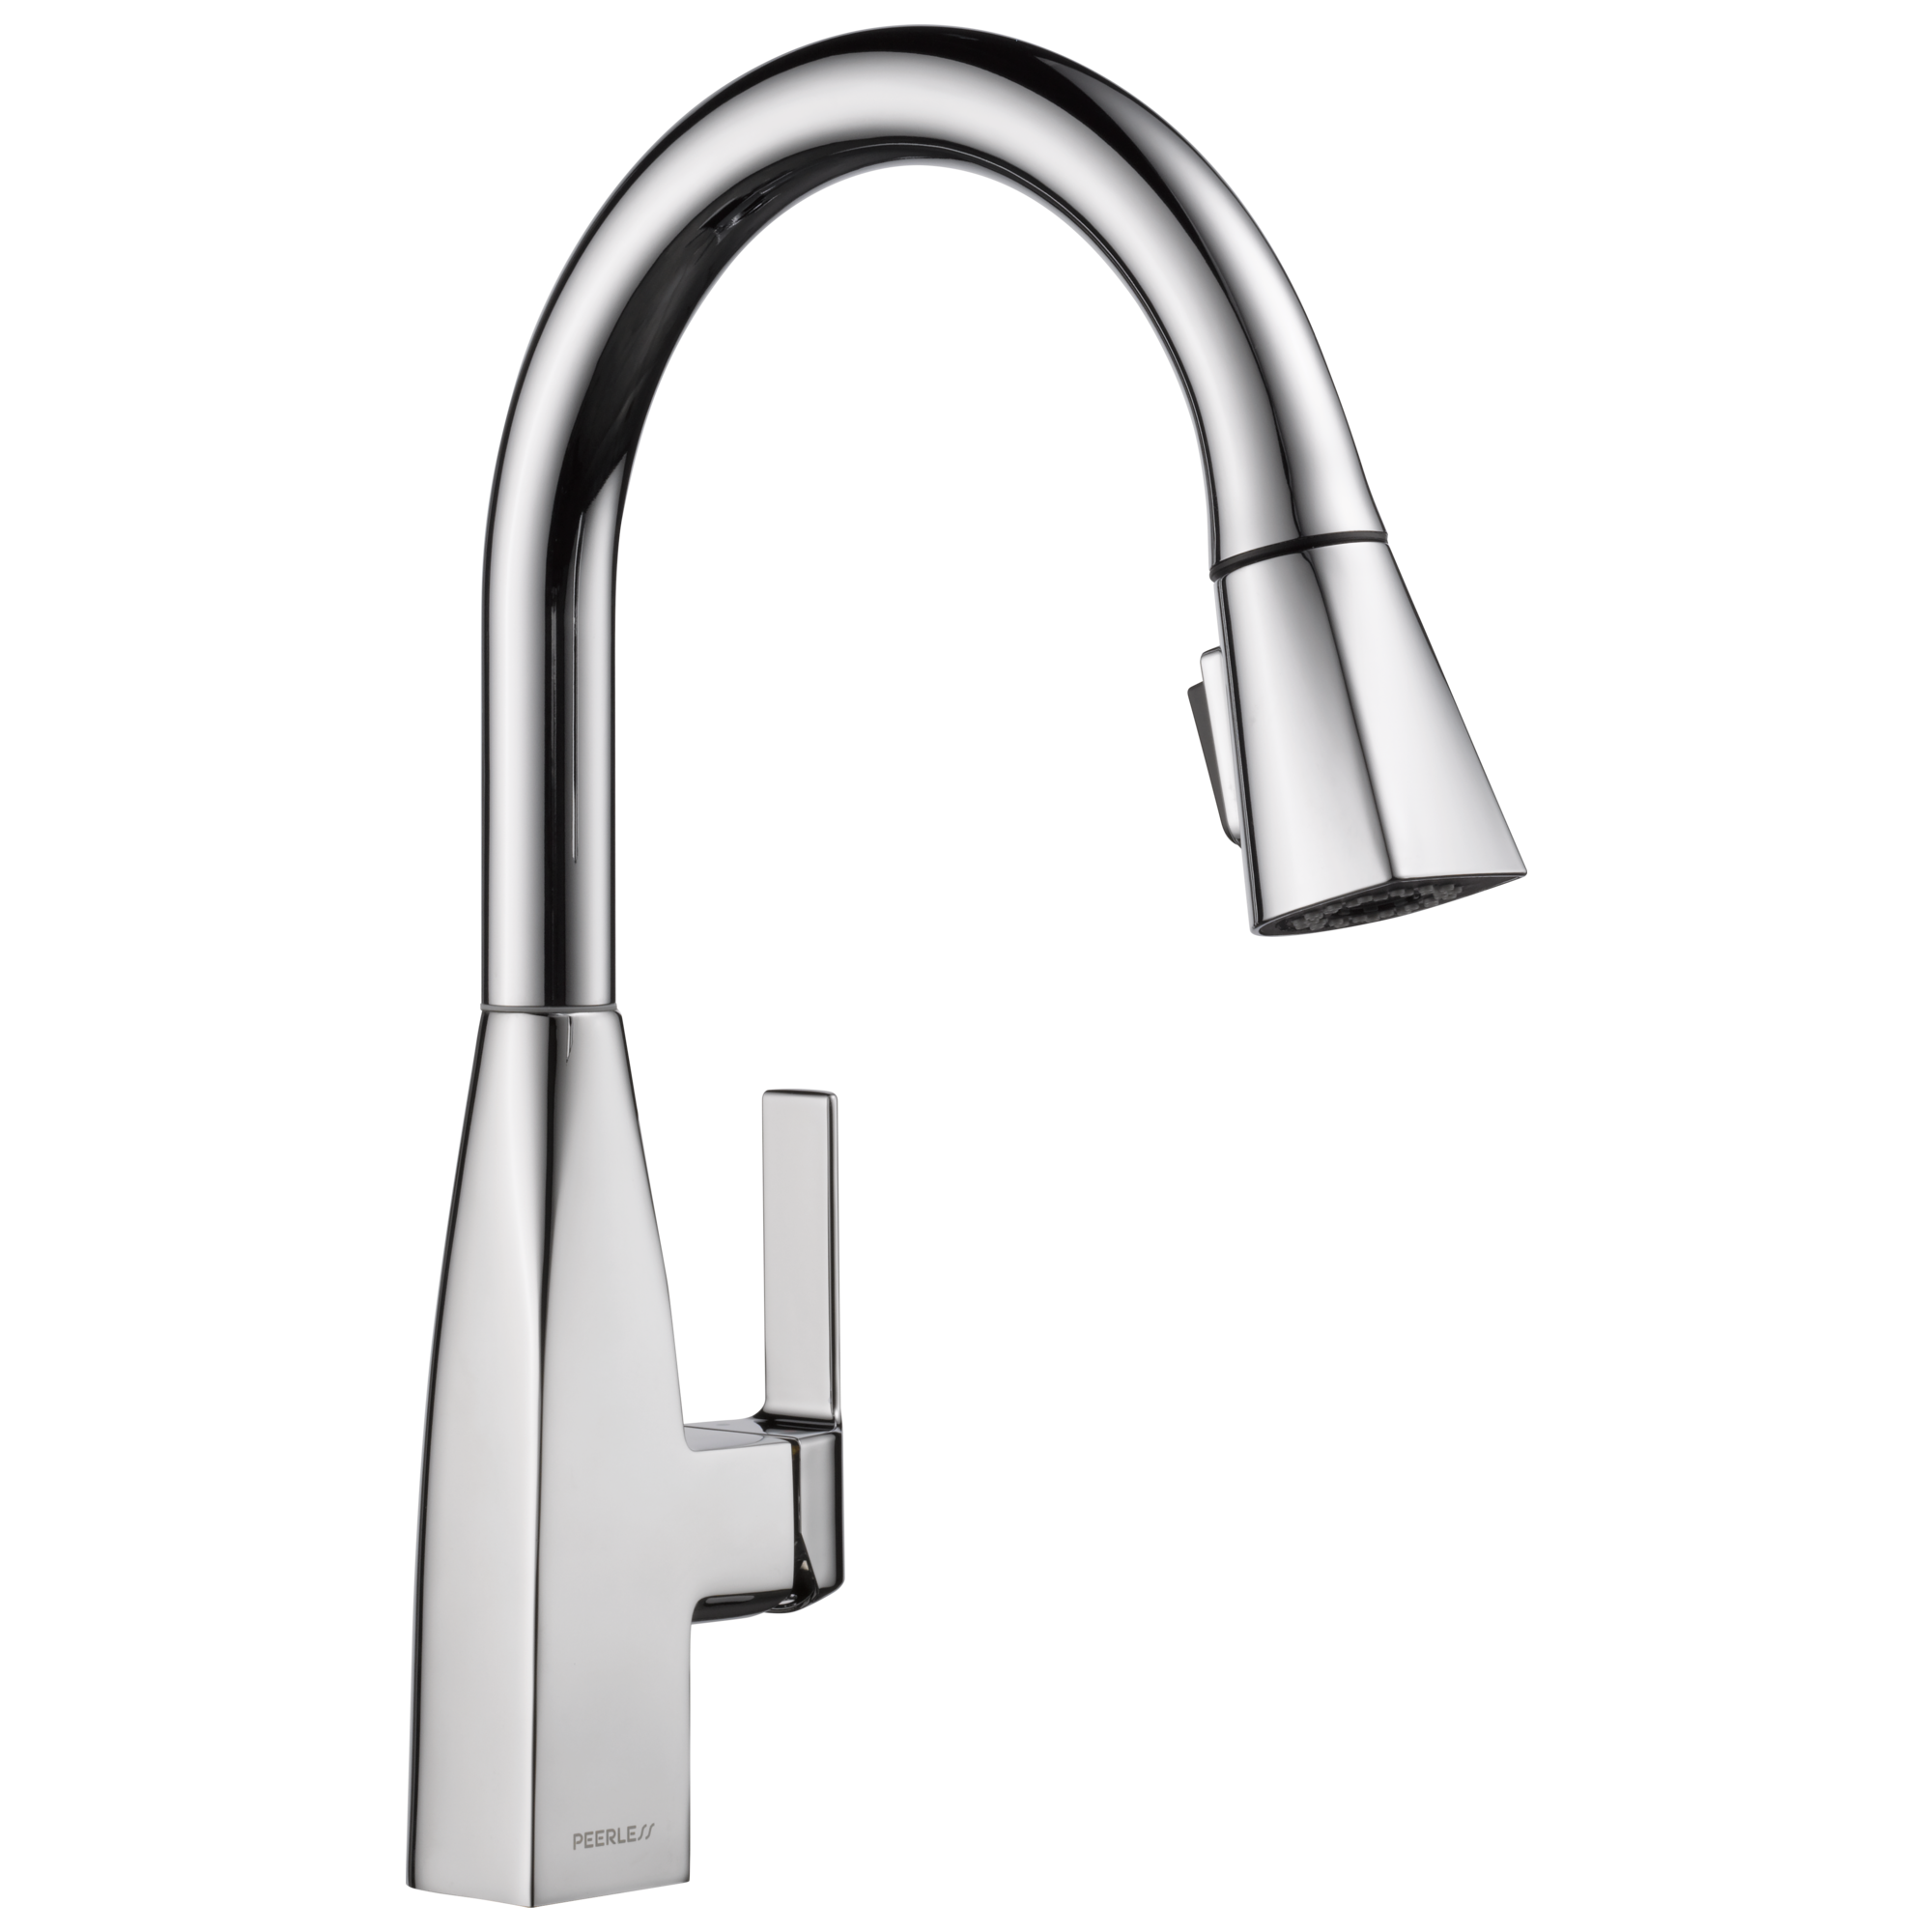 Peerless Faucet Automatic Sink Wiring Diagrams Single Handle Pulldown Kitchen